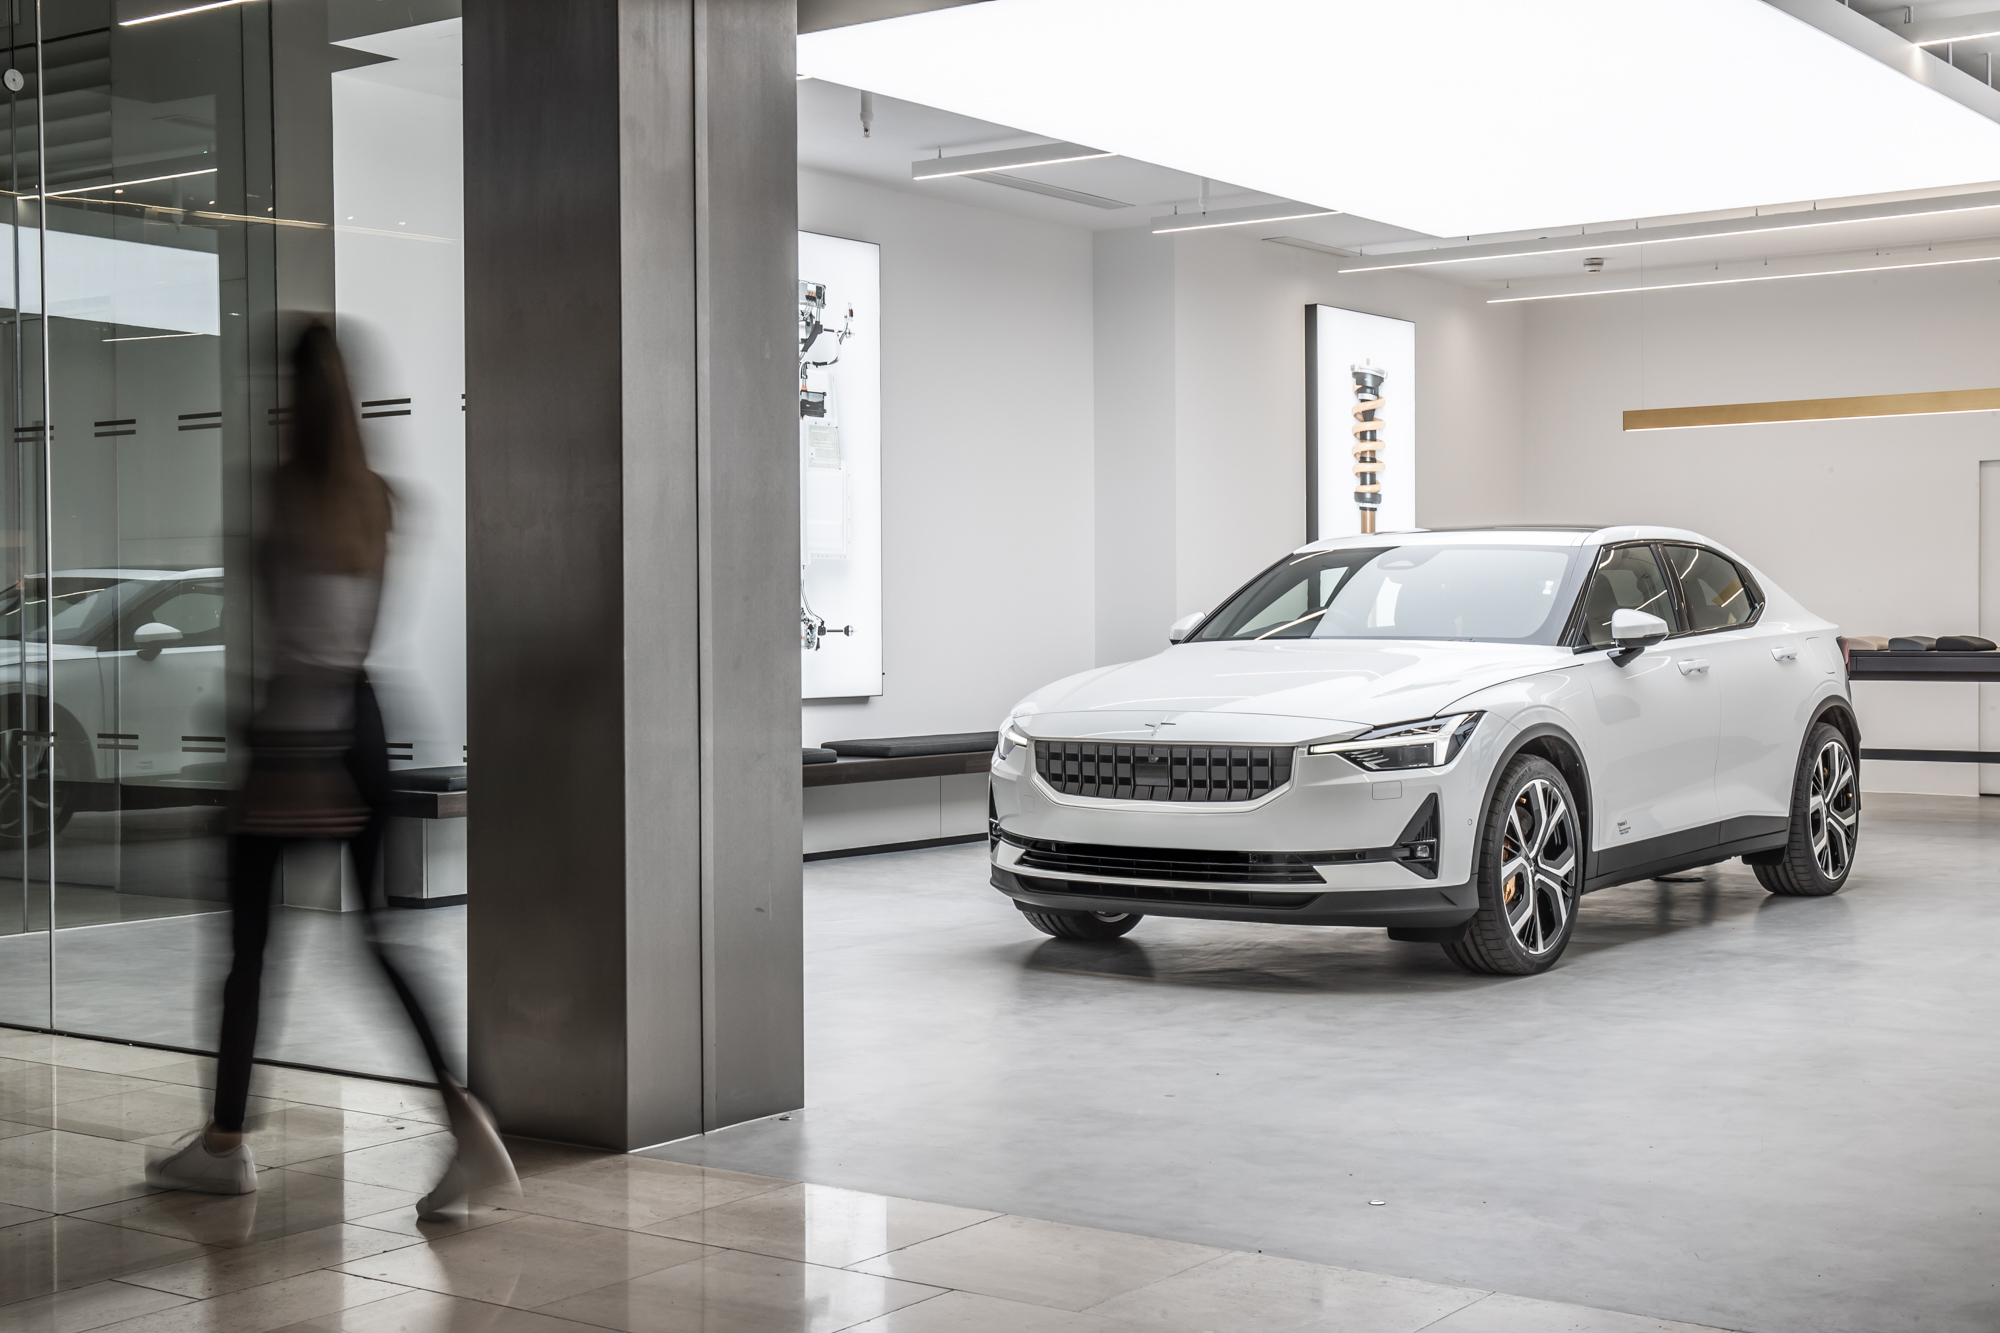 Polestar Display Space